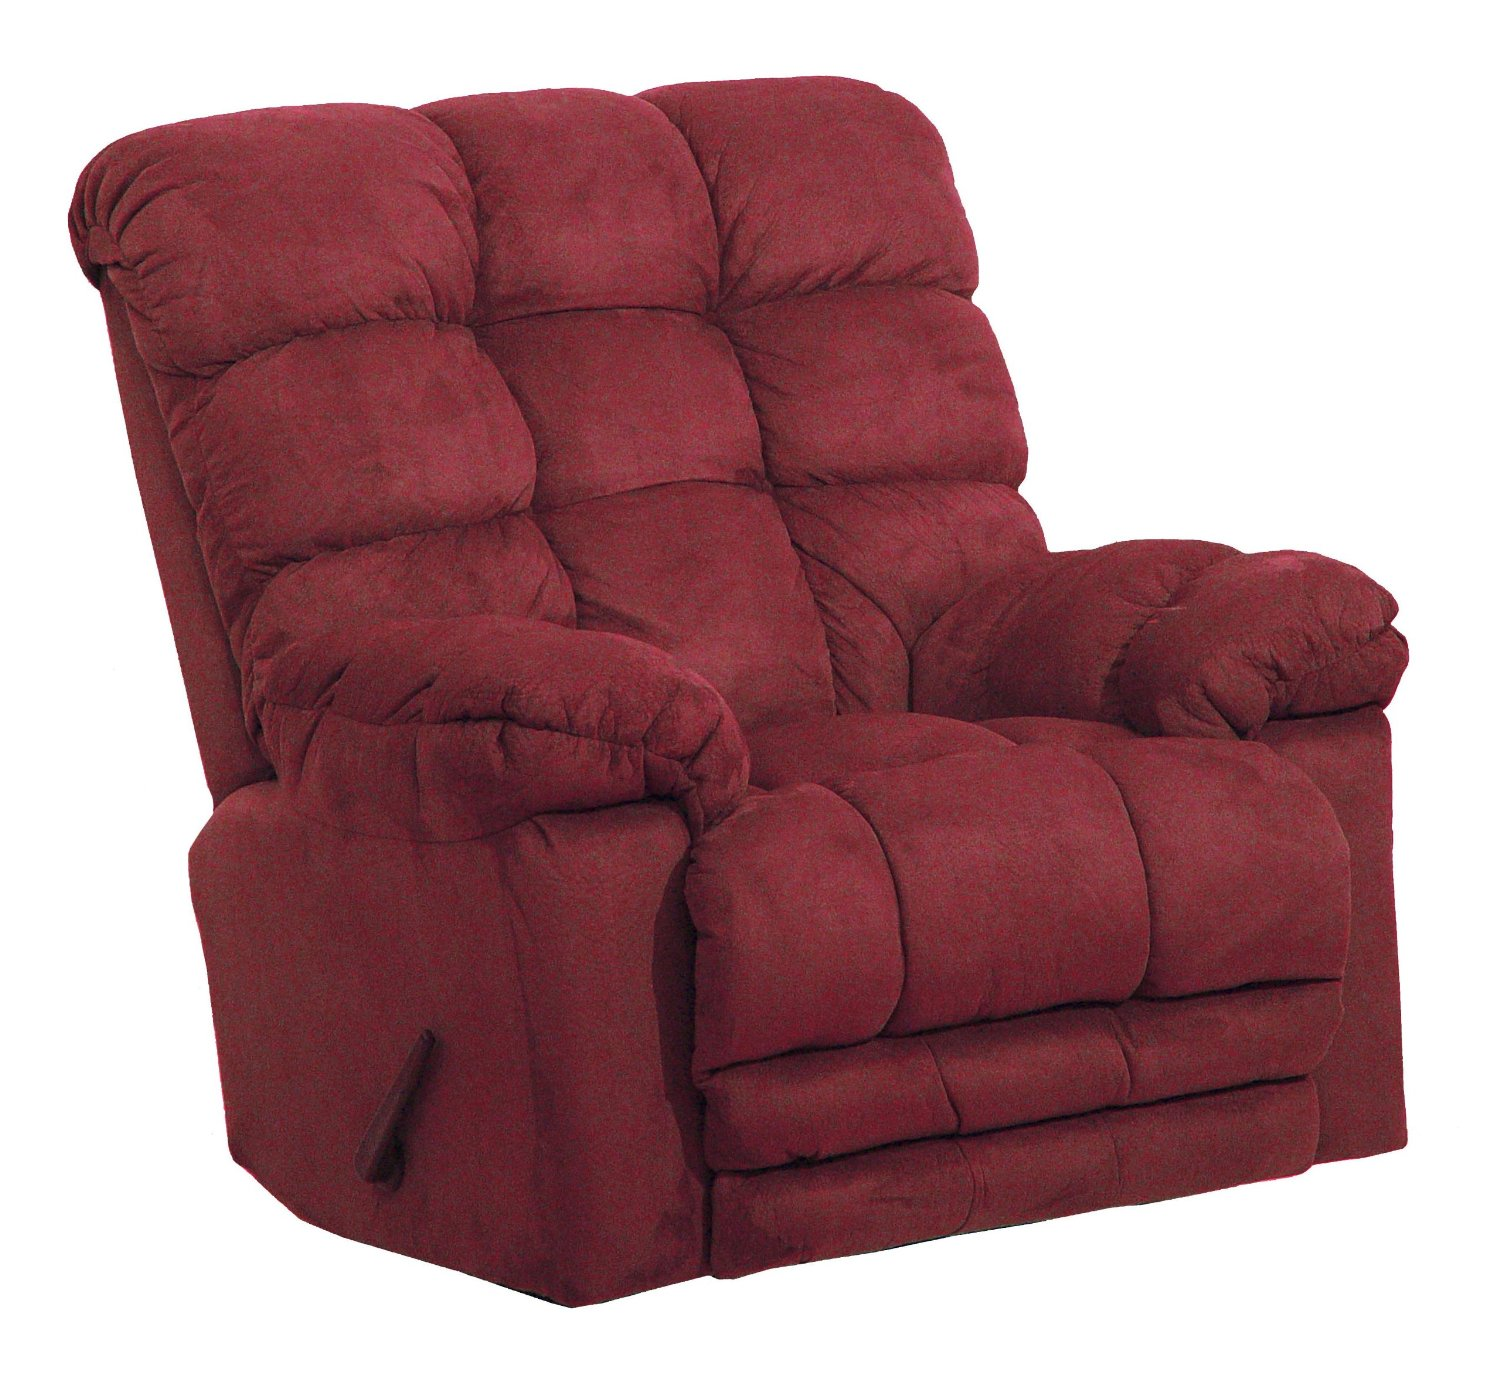 The best extra wide recliner chair the best recliner for Catnapper magnum chaise recliner